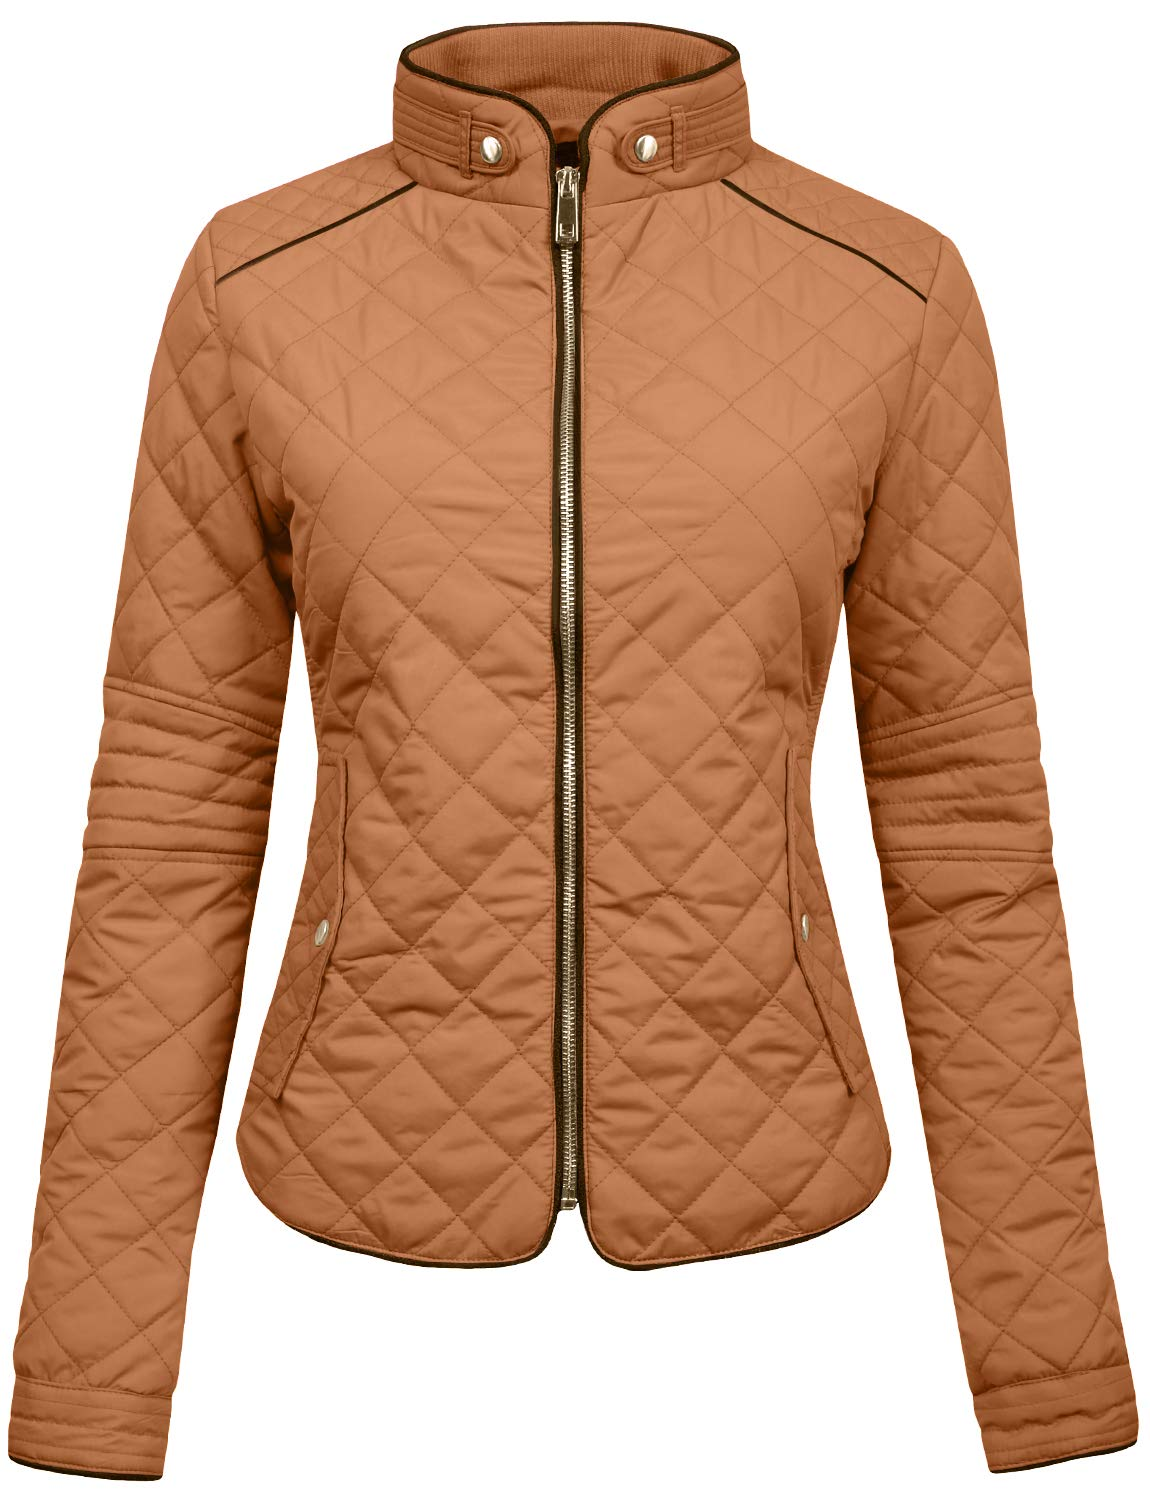 NE PEOPLE Womens Lightweight Quilted Zip Jacket, Small, NEWJ22CAMEL